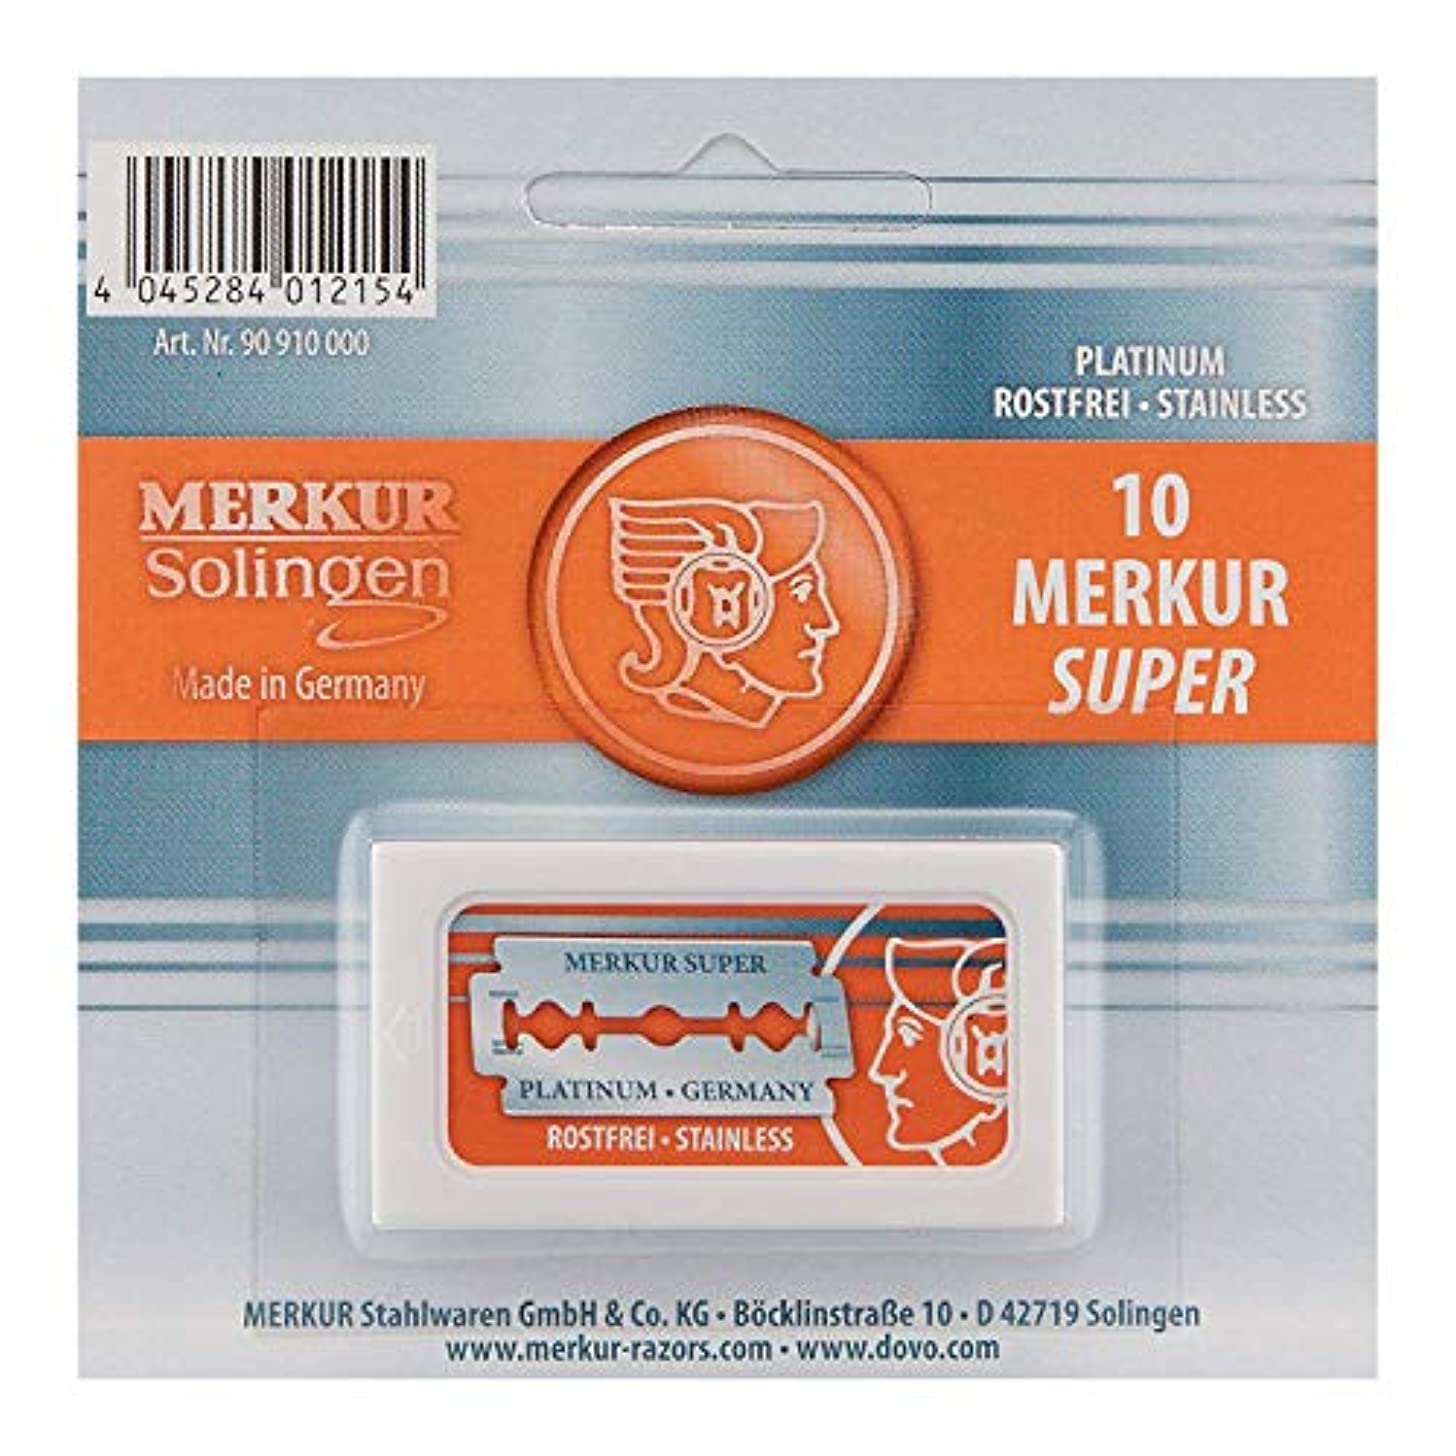 承認優れました信頼性のあるMerkur Stainless Platinum Safety Razor Blades 10 Pack